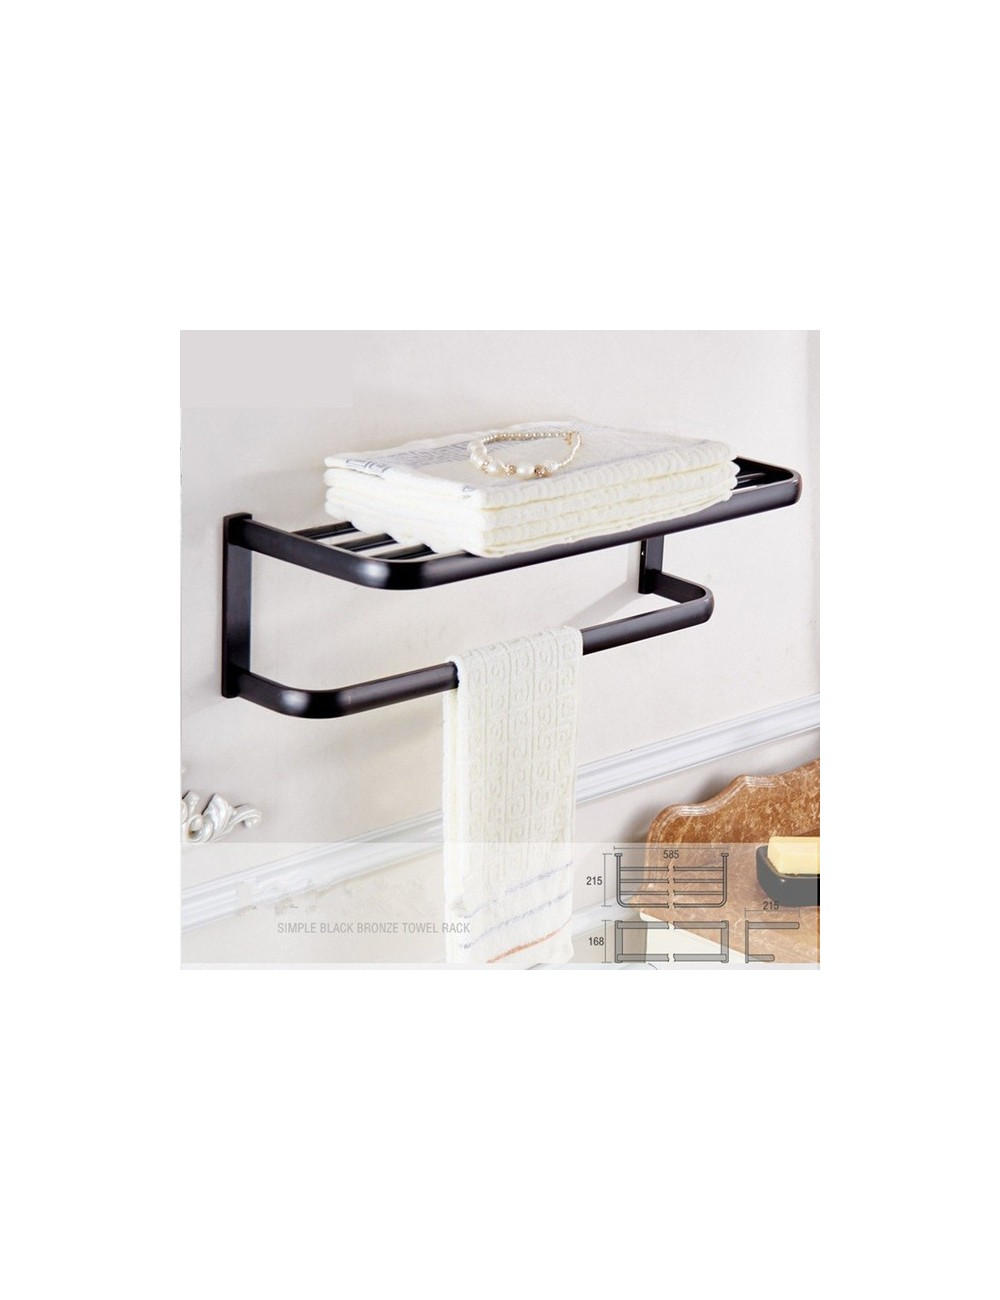 Collection rio rack porte serviette orb noir 60 cm for Porte 60 cm de large